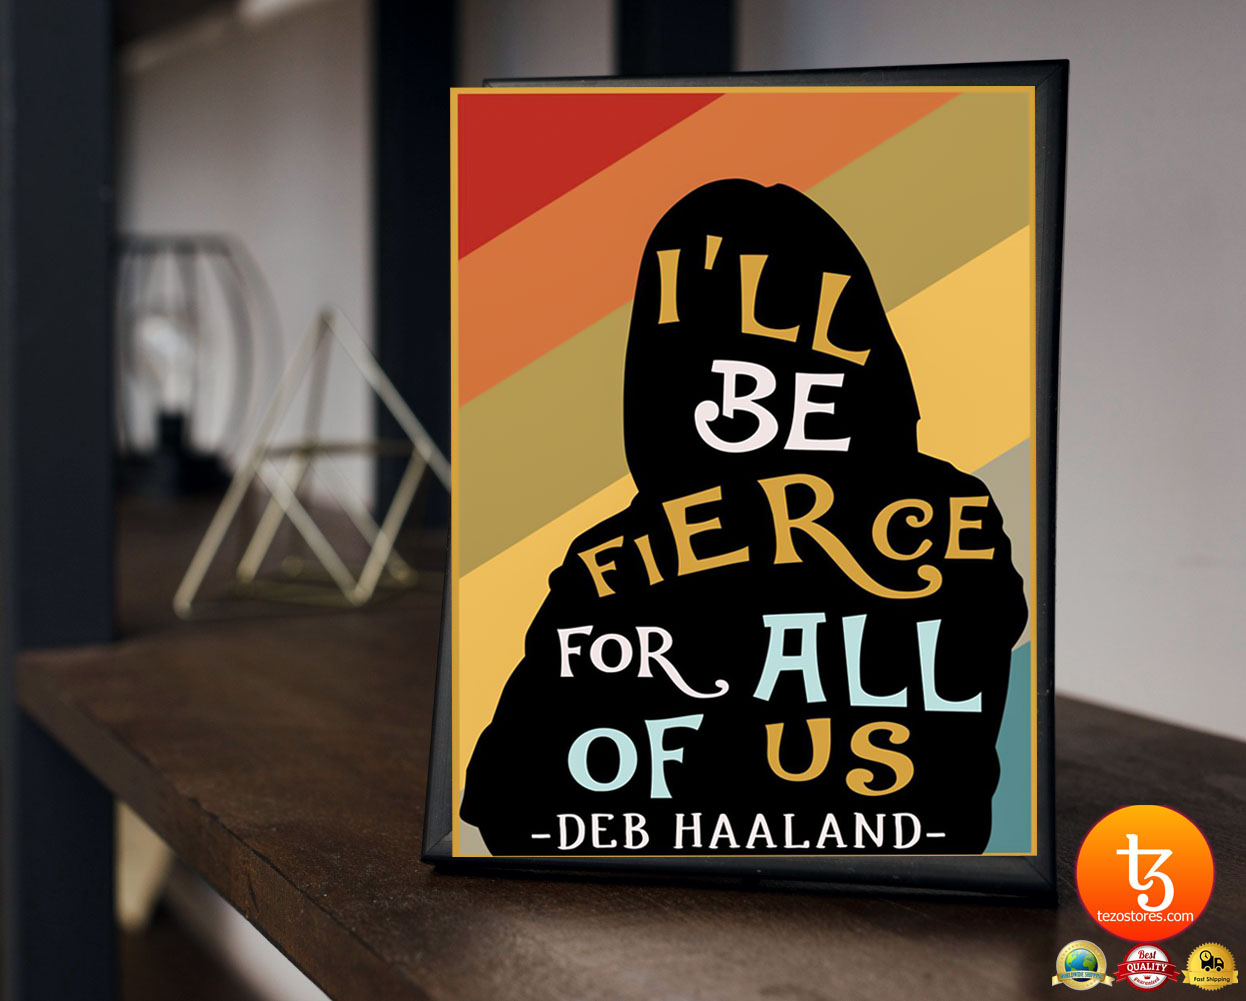 I'll be fierce for all of us deb haaland poster 23